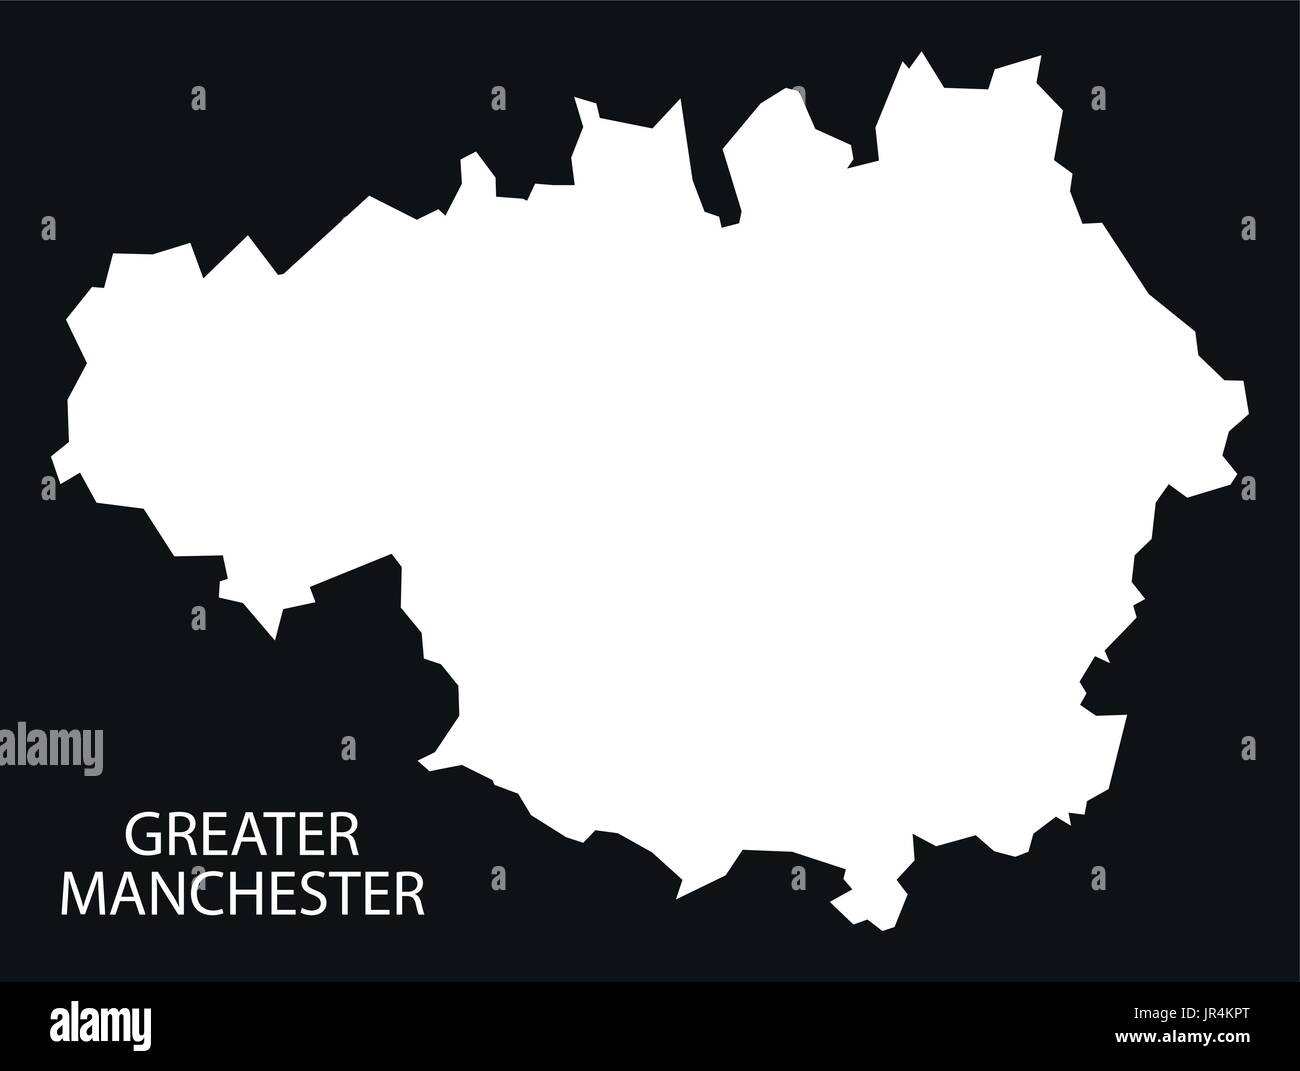 Map Of England Manchester.Greater Manchester England Uk Map Black Inverted Silhouette Stock